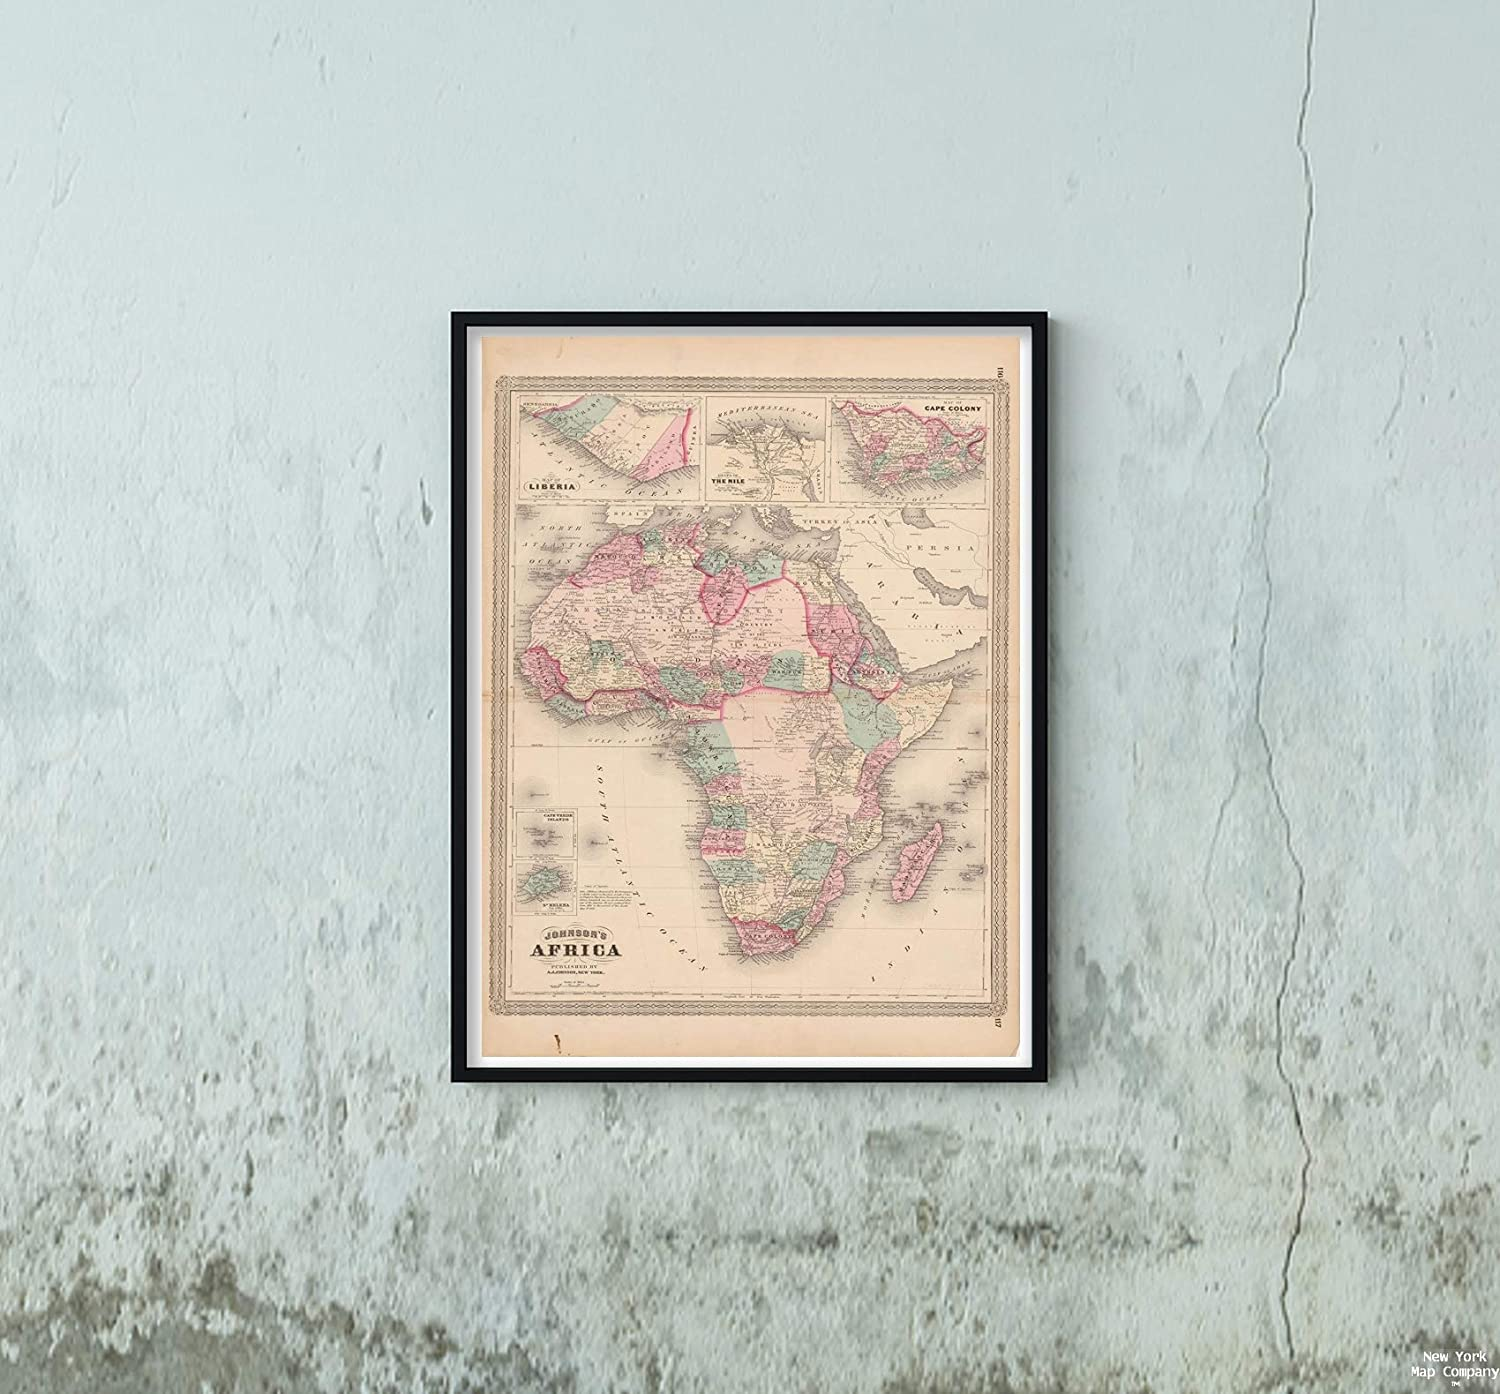 Map Family Atlas of The World, Africa 1873 Continent Historic Antique Vintage Reprint Size: 18x24 Ready to Frame